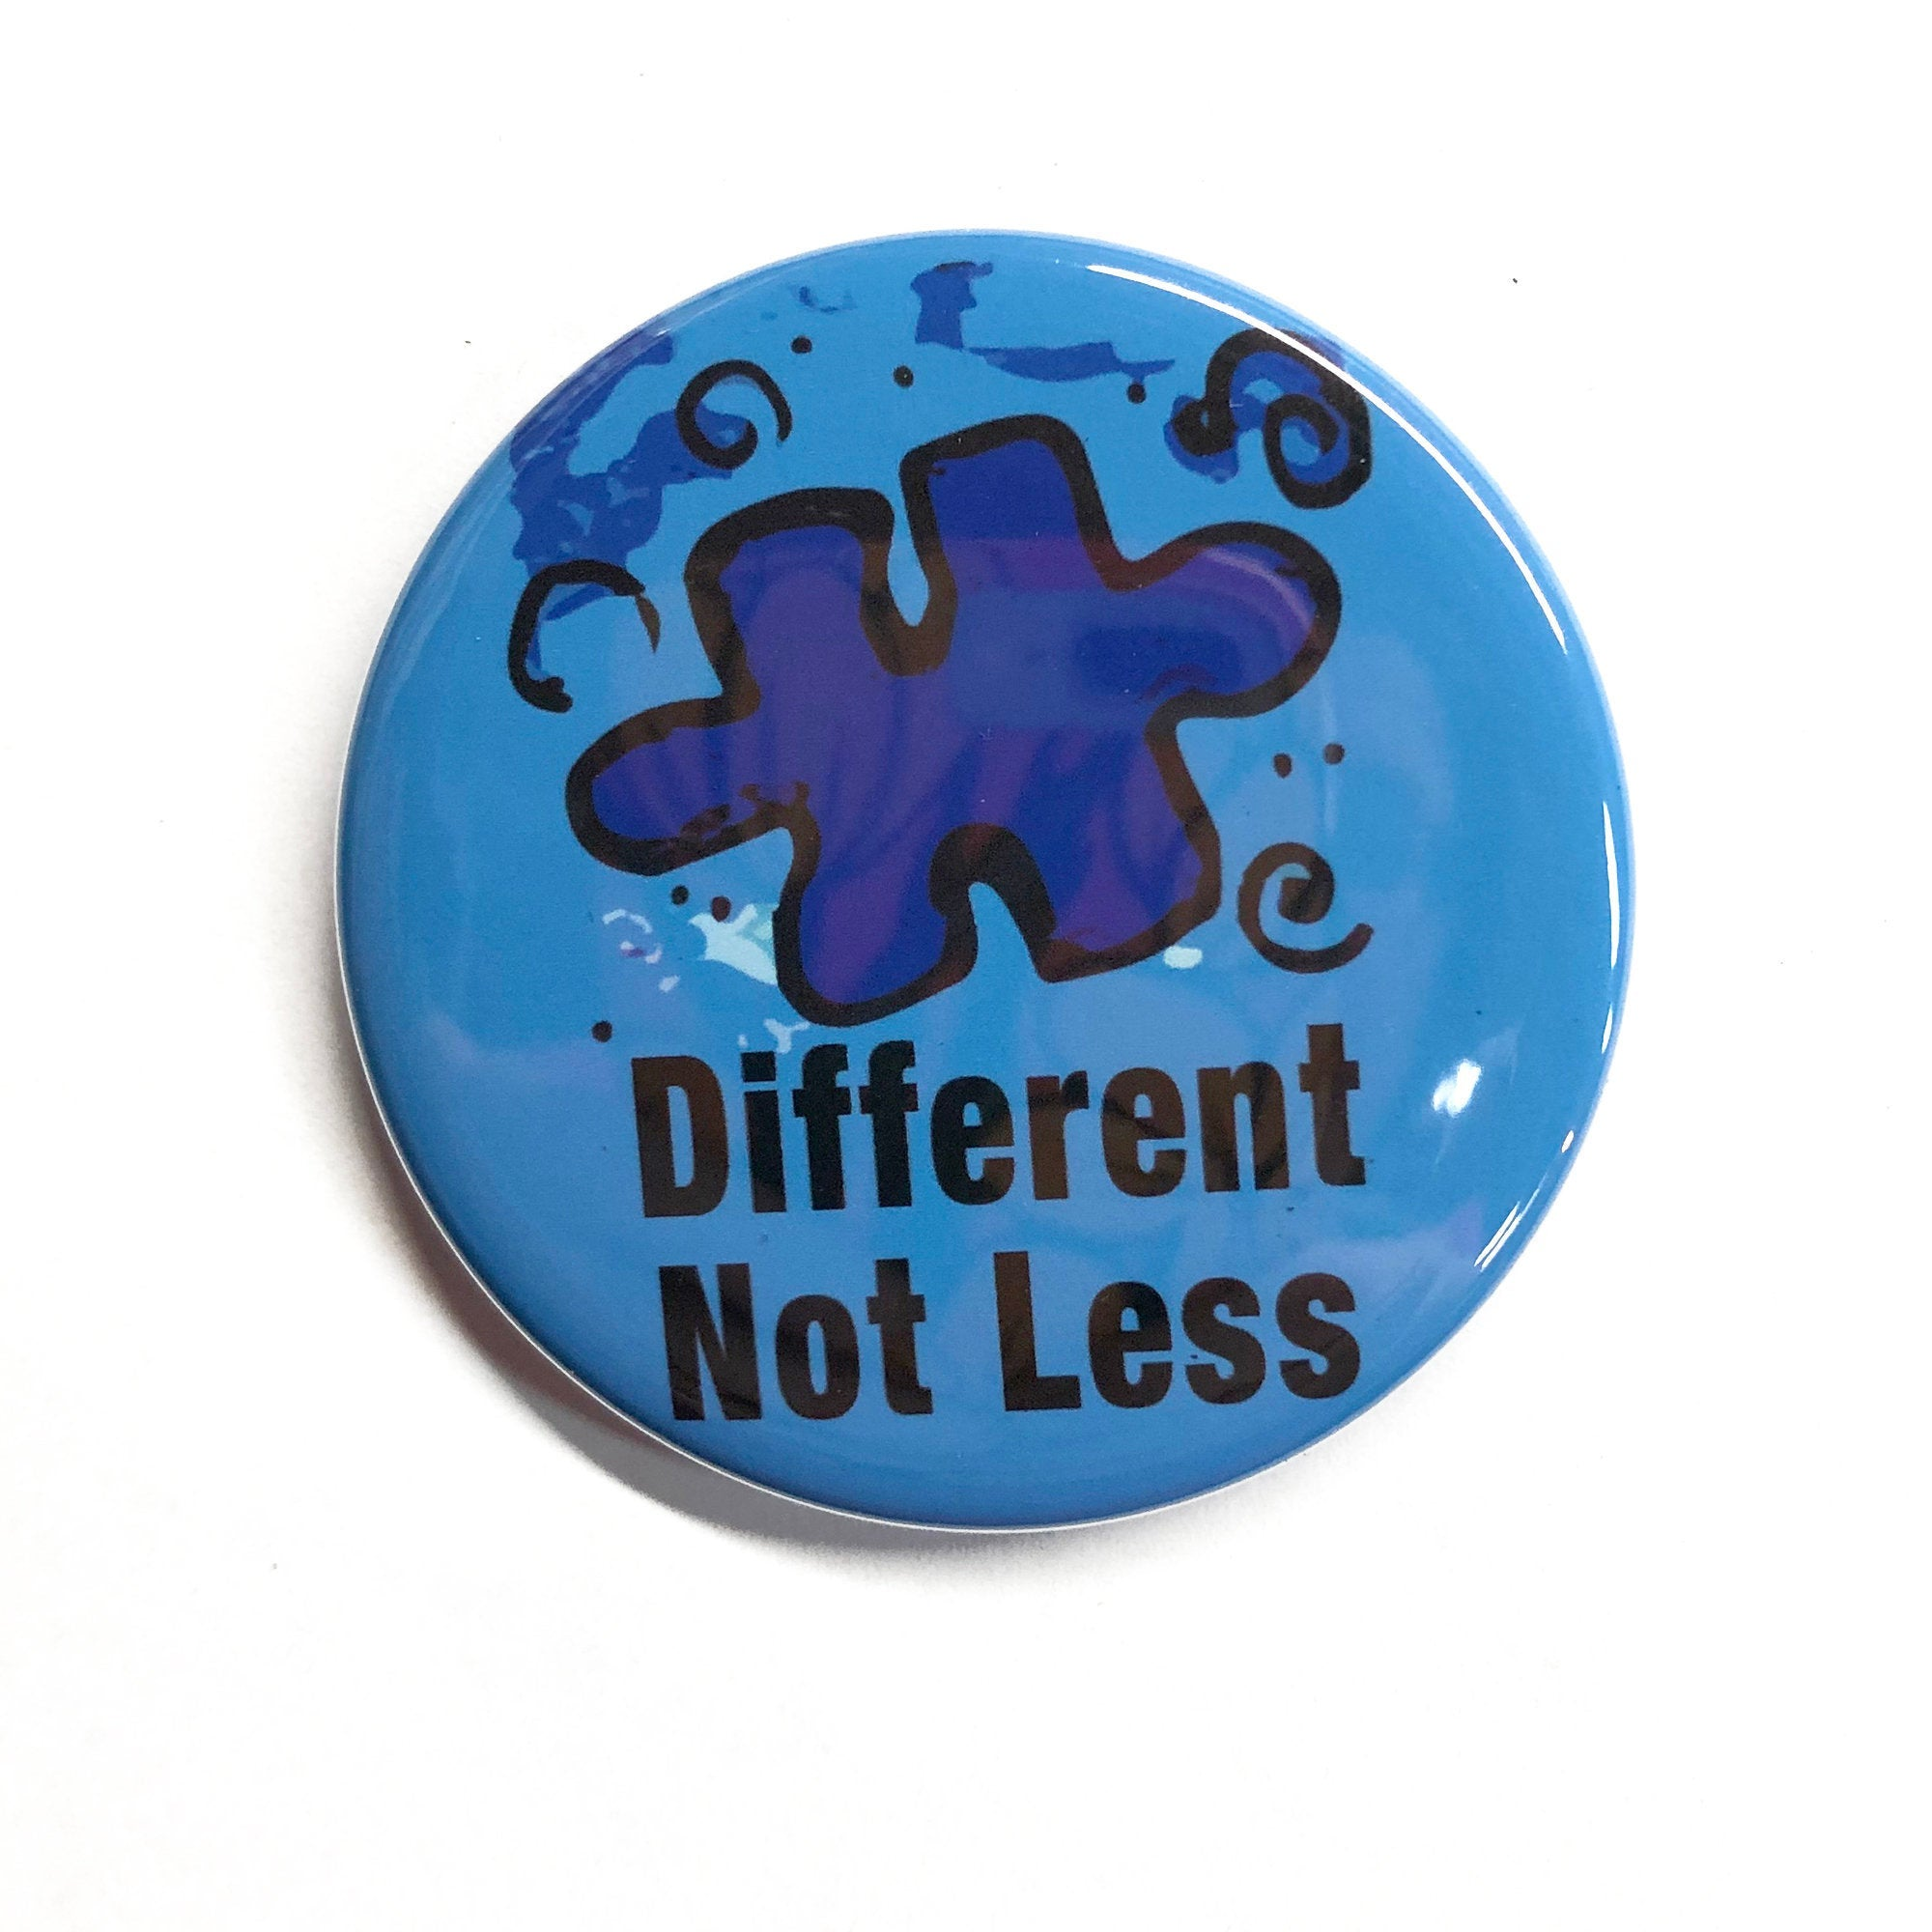 Different Not Less Magnet, Pin, or Pocket Mirror - Autism Awareness